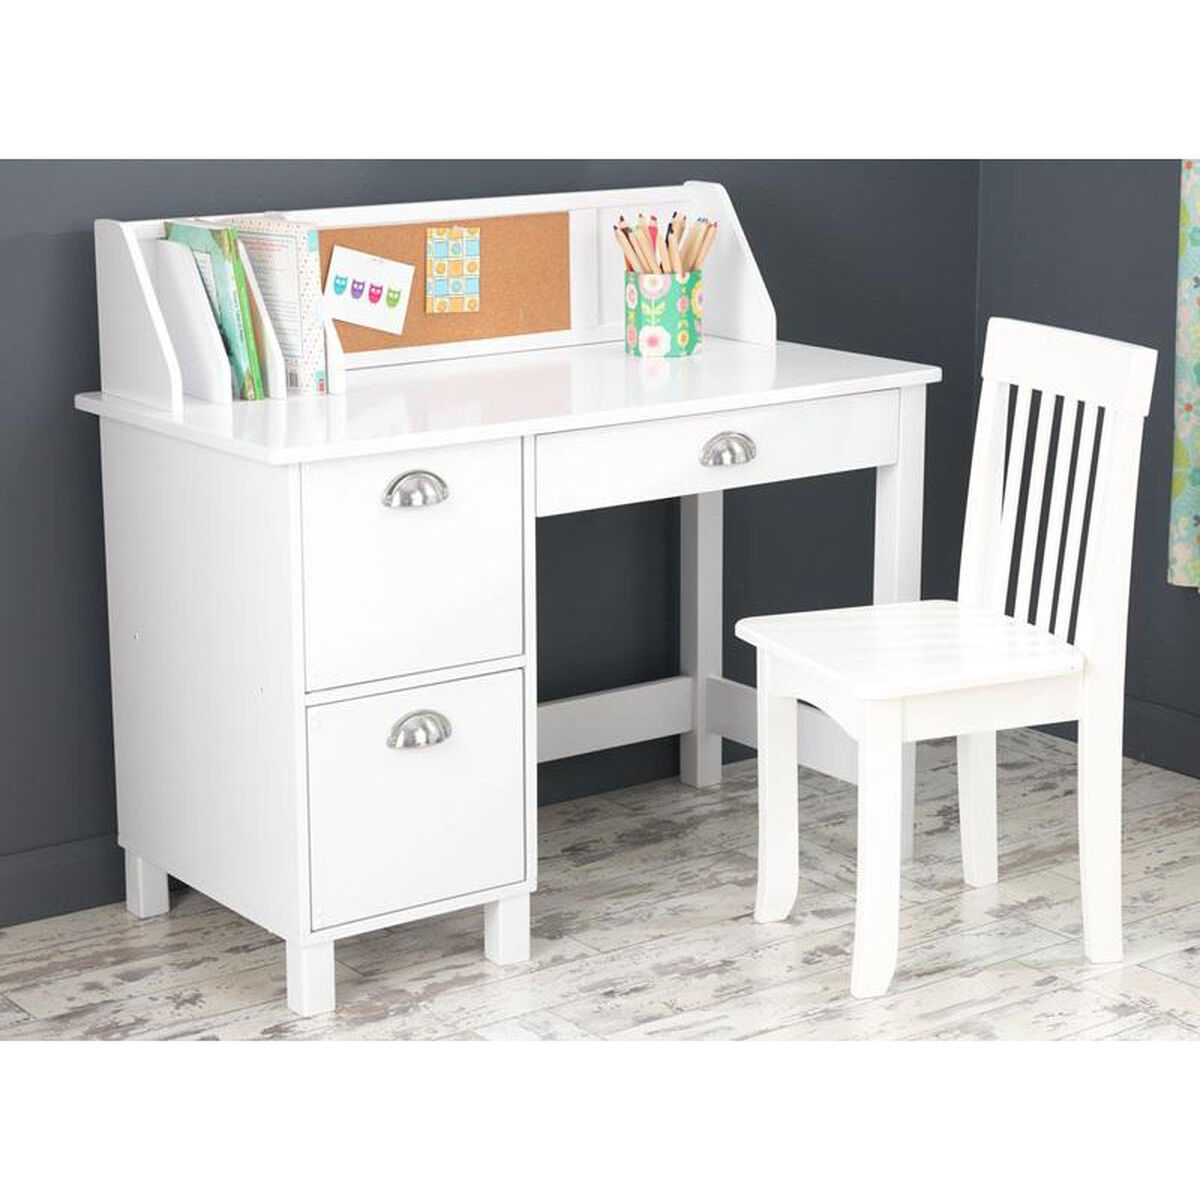 Kids Wooden Writing And Study Desk With Bulletin Board